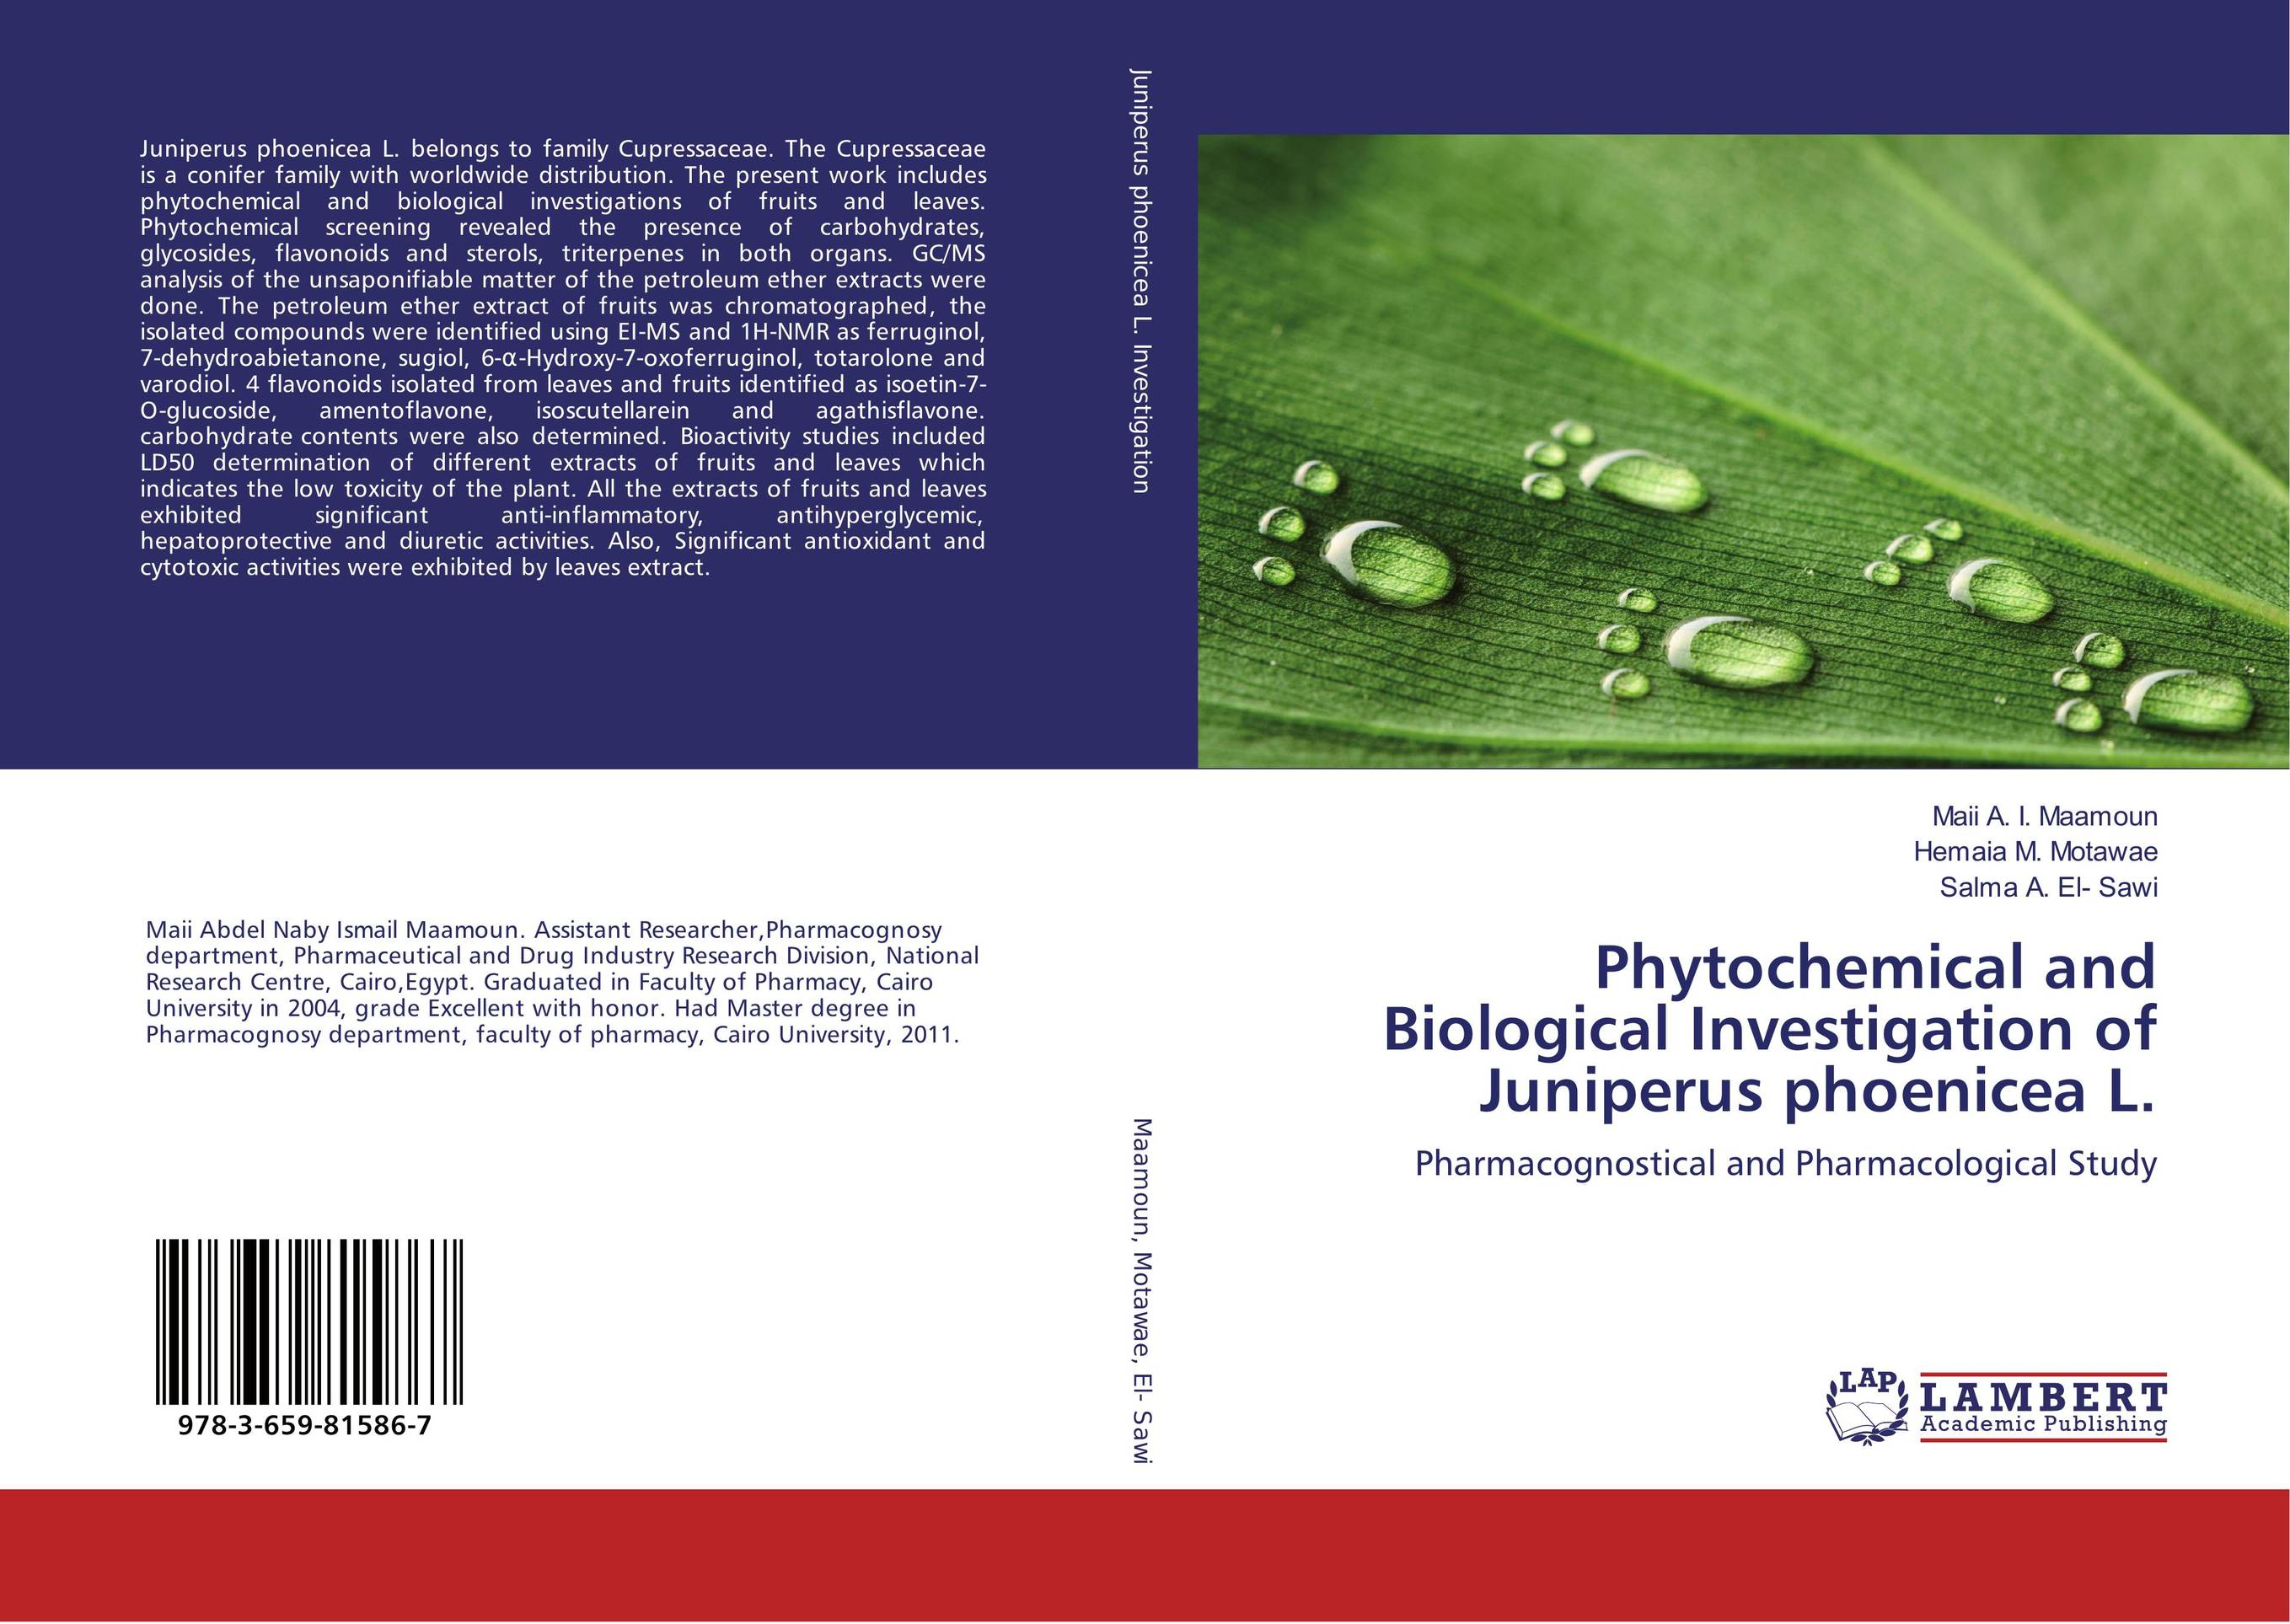 Phytochemical and Biological Investigation of Juniperus phoenicea L. md rabiul islam s m ibrahim sumon and farhana lipi phytochemical evaluation of leaves of cymbopogan citratus